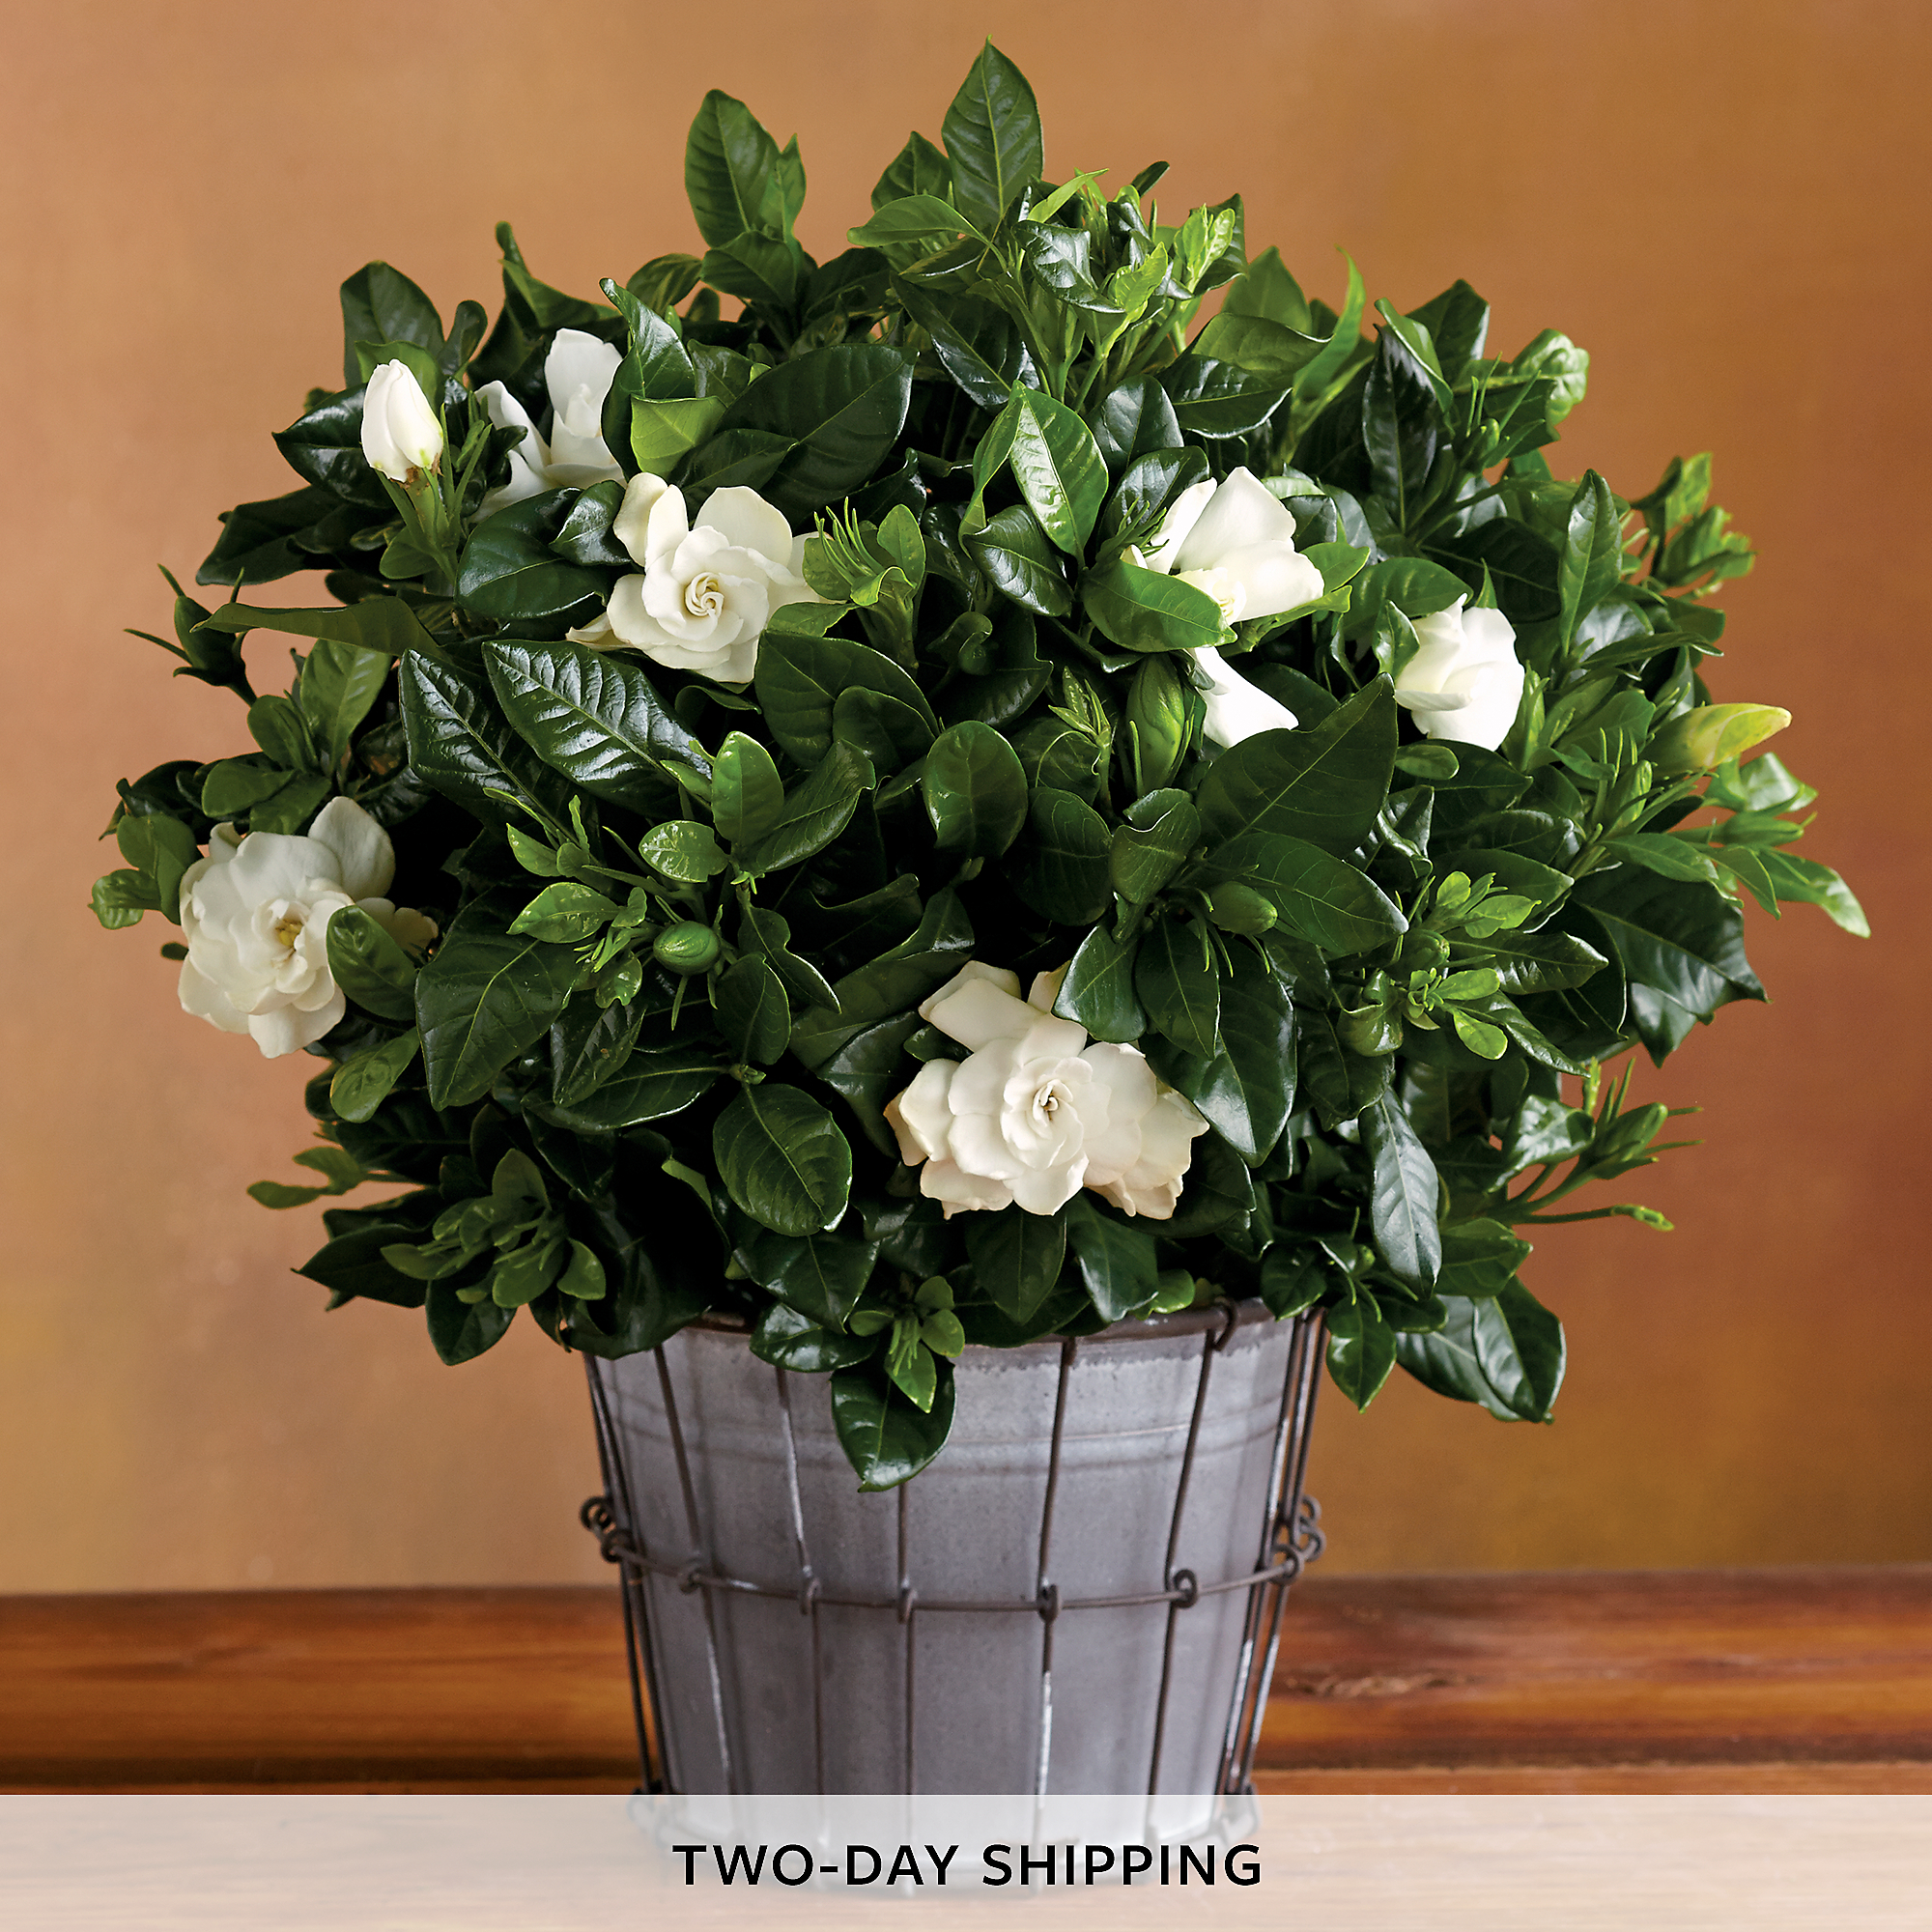 6 Everblooming Gardenia Flower Delivery Harry David